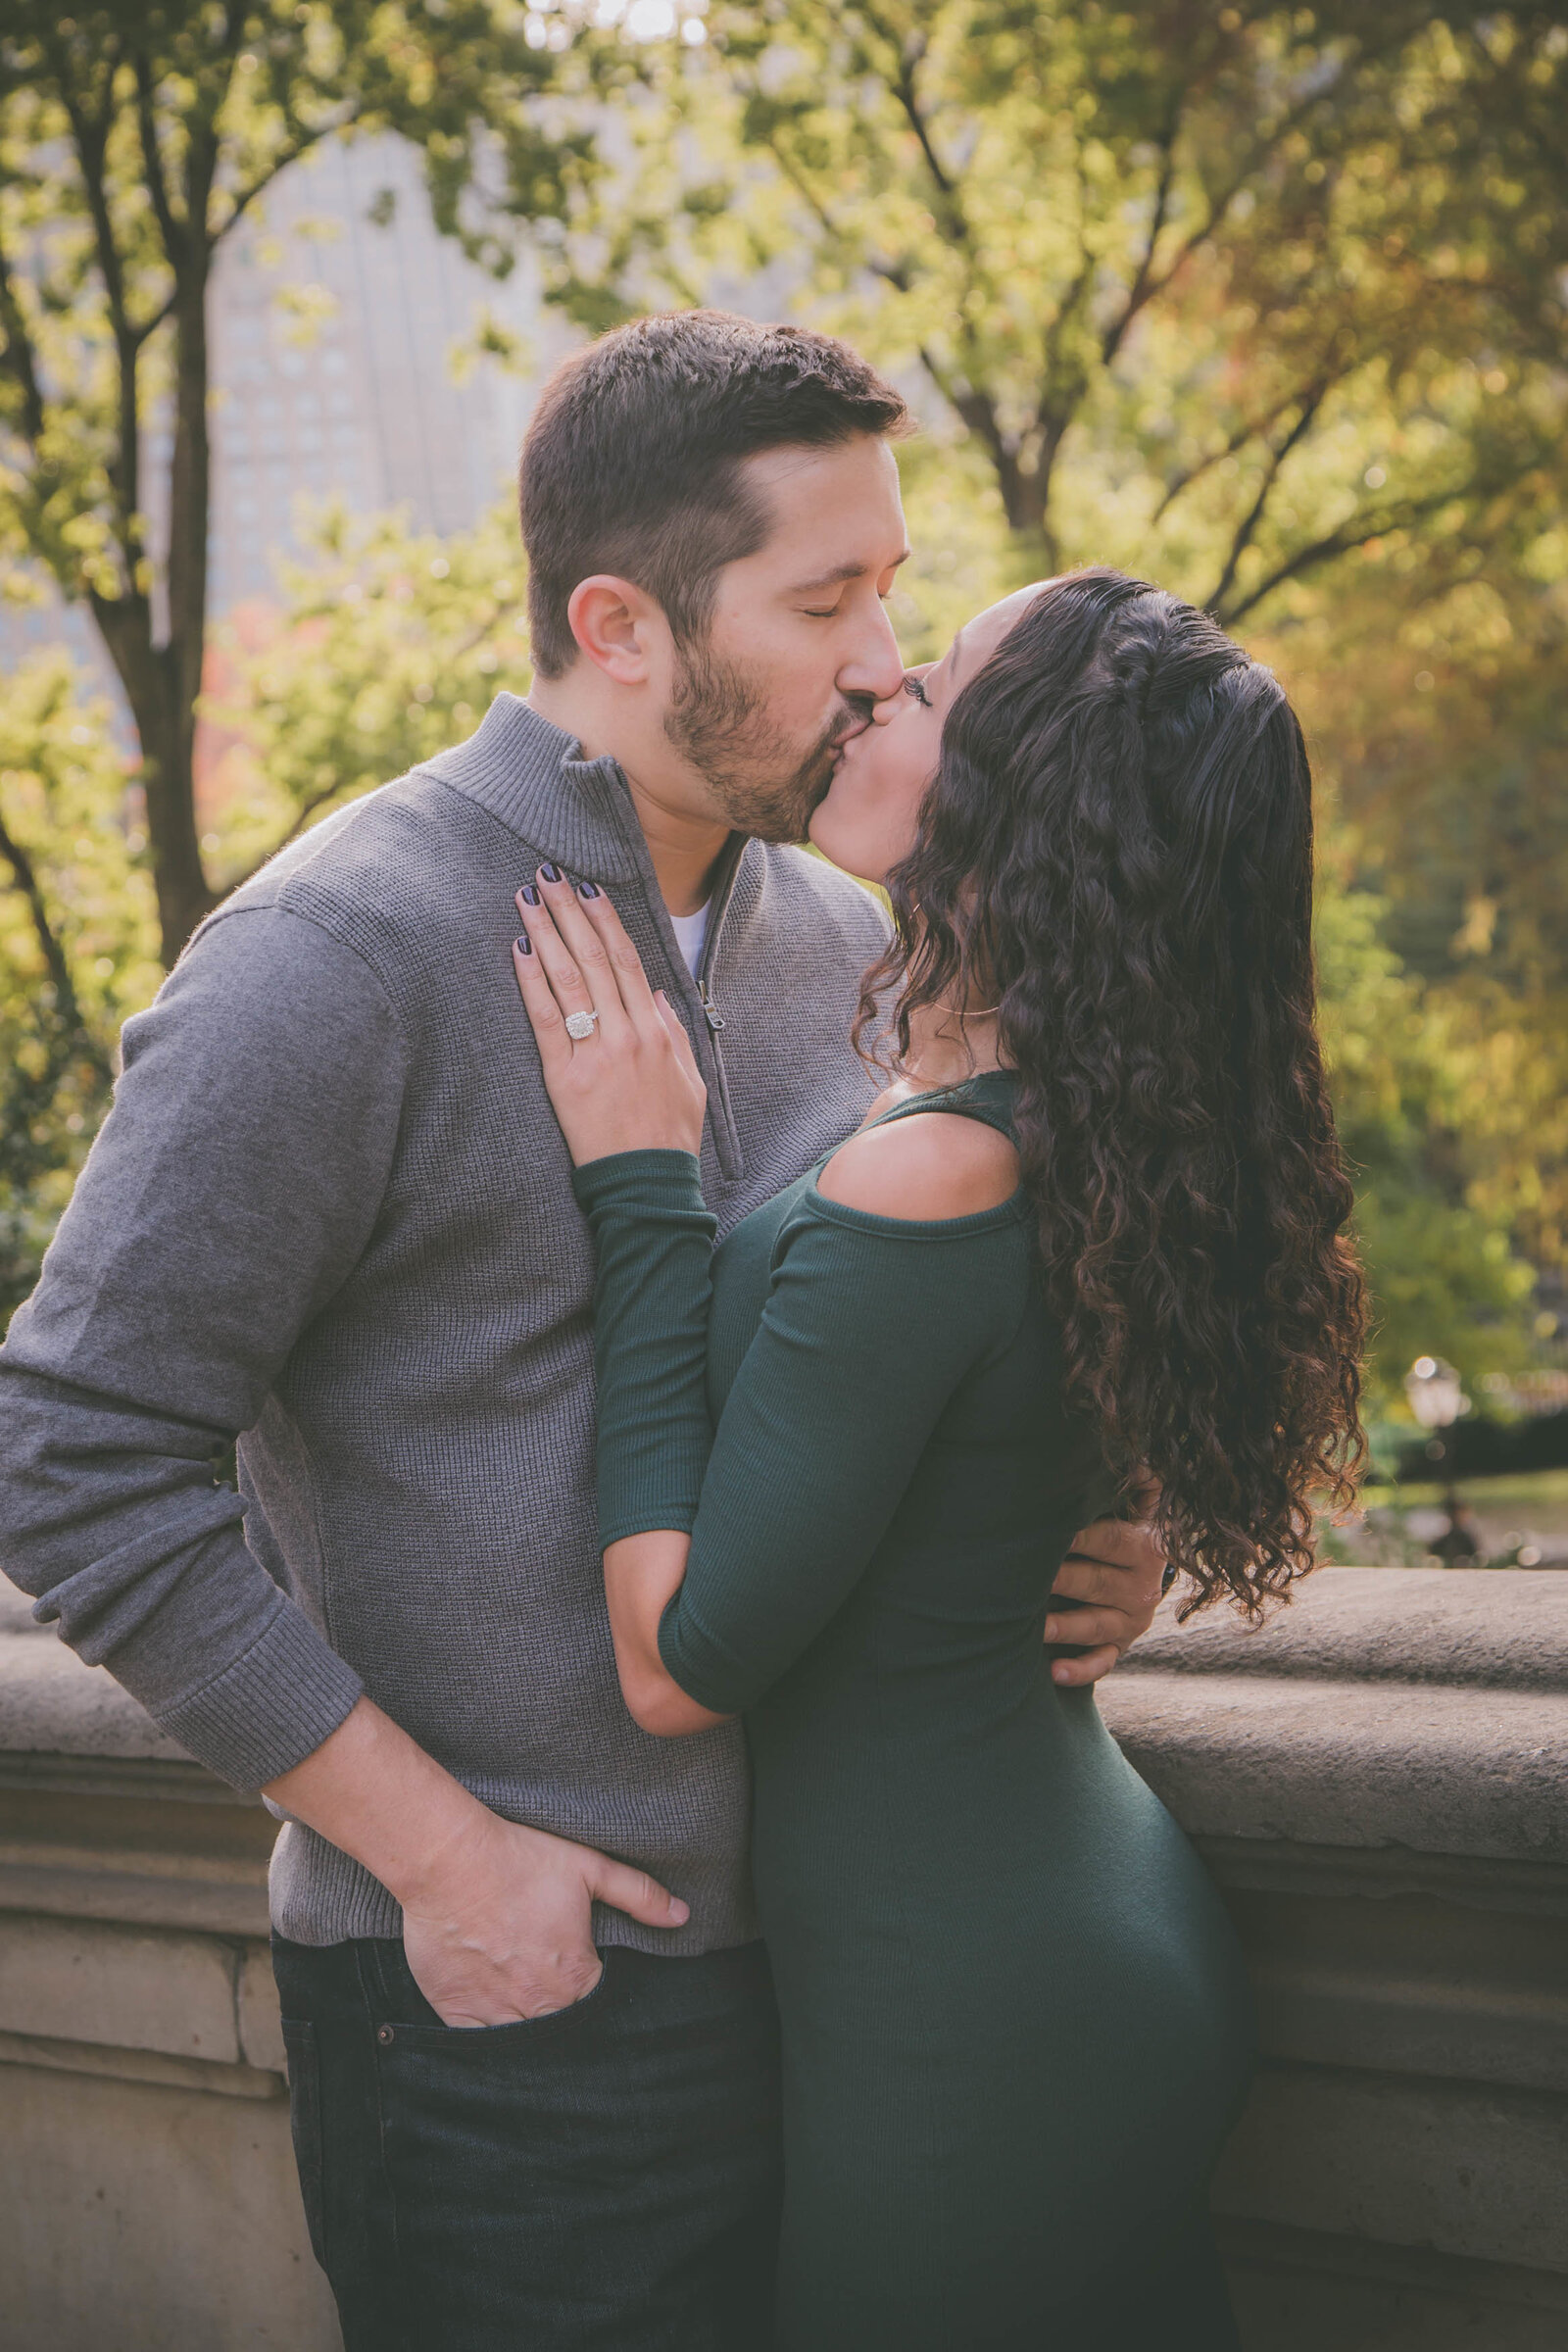 Couple kisses in Central Park NY during engagement session.